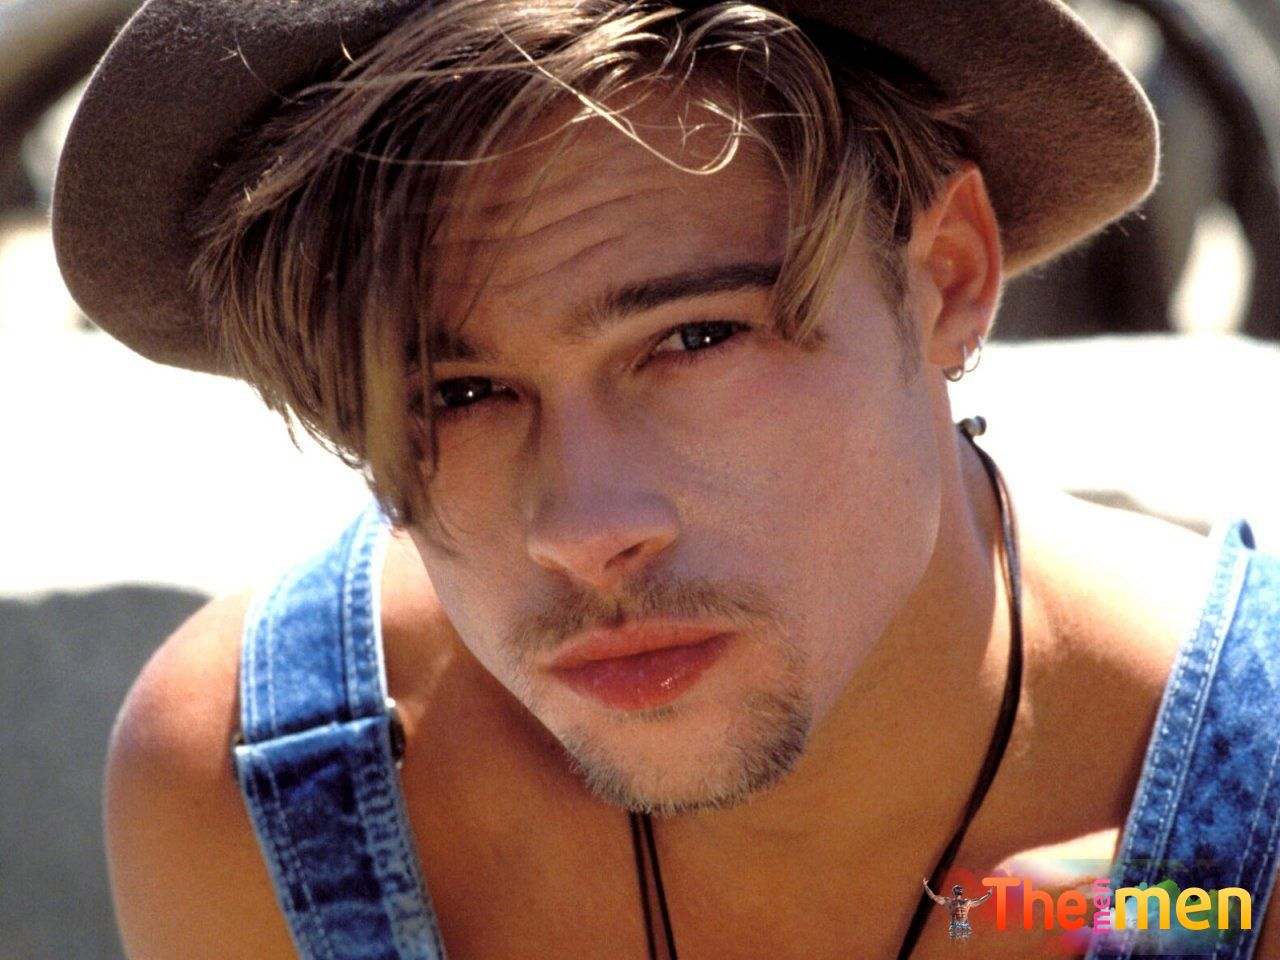 Brad Pitt Was The Hottest In His Prime